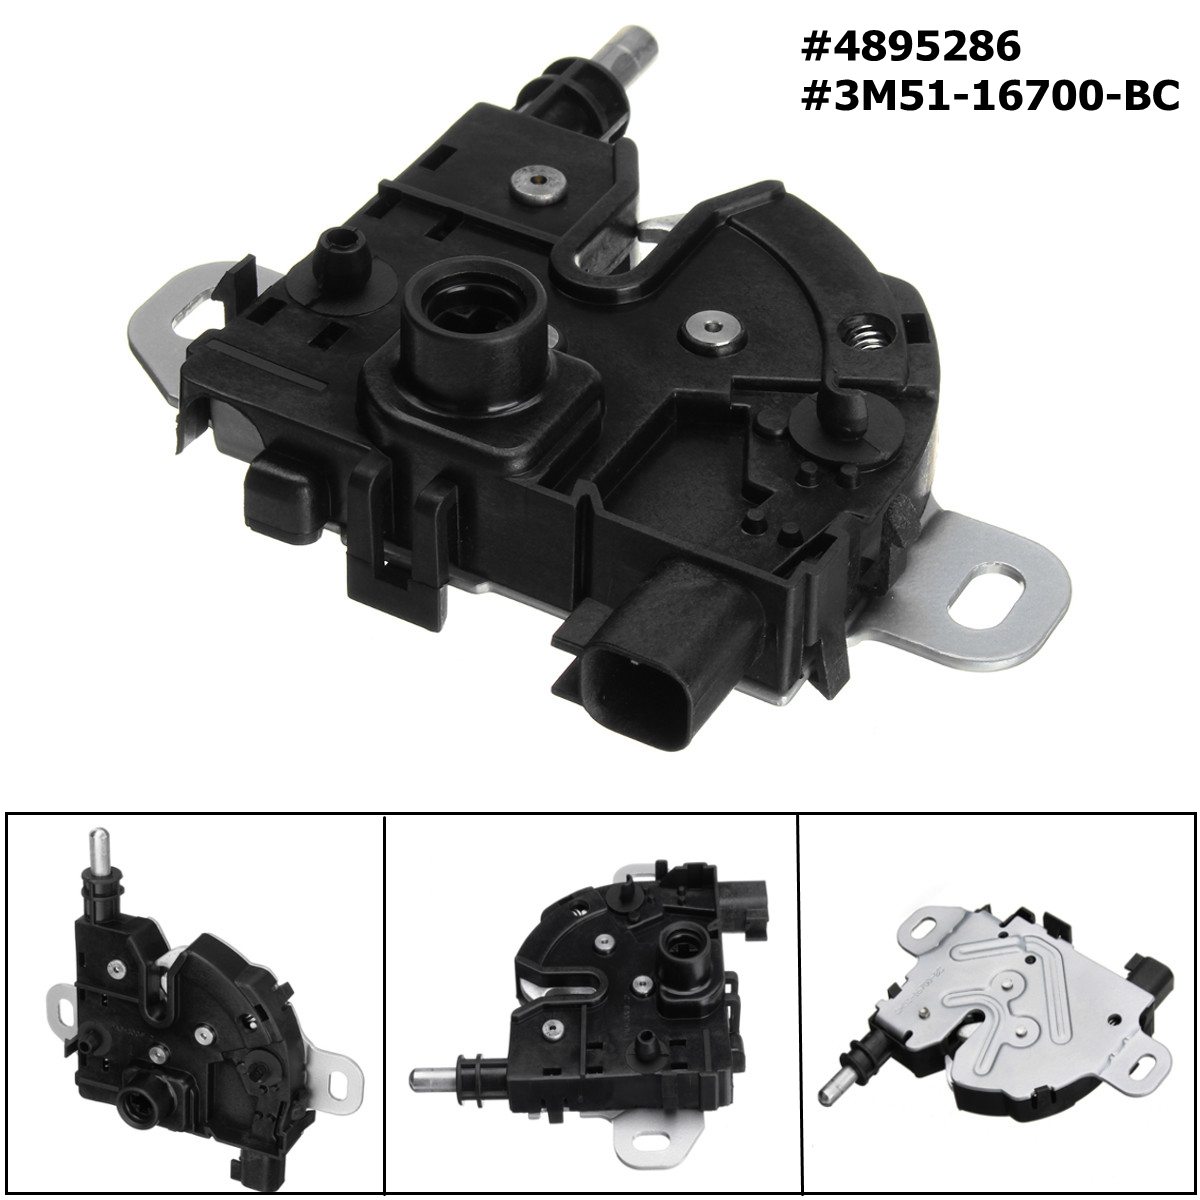 Bonnet Hood Lock Block Latch Catch for Ford for Focus MK2 C-Max Kuga MK1 2003-2016 4895286 3M51-16700-BCBonnet Hood Lock Block Latch Catch for Ford for Focus MK2 C-Max Kuga MK1 2003-2016 4895286 3M51-16700-BC